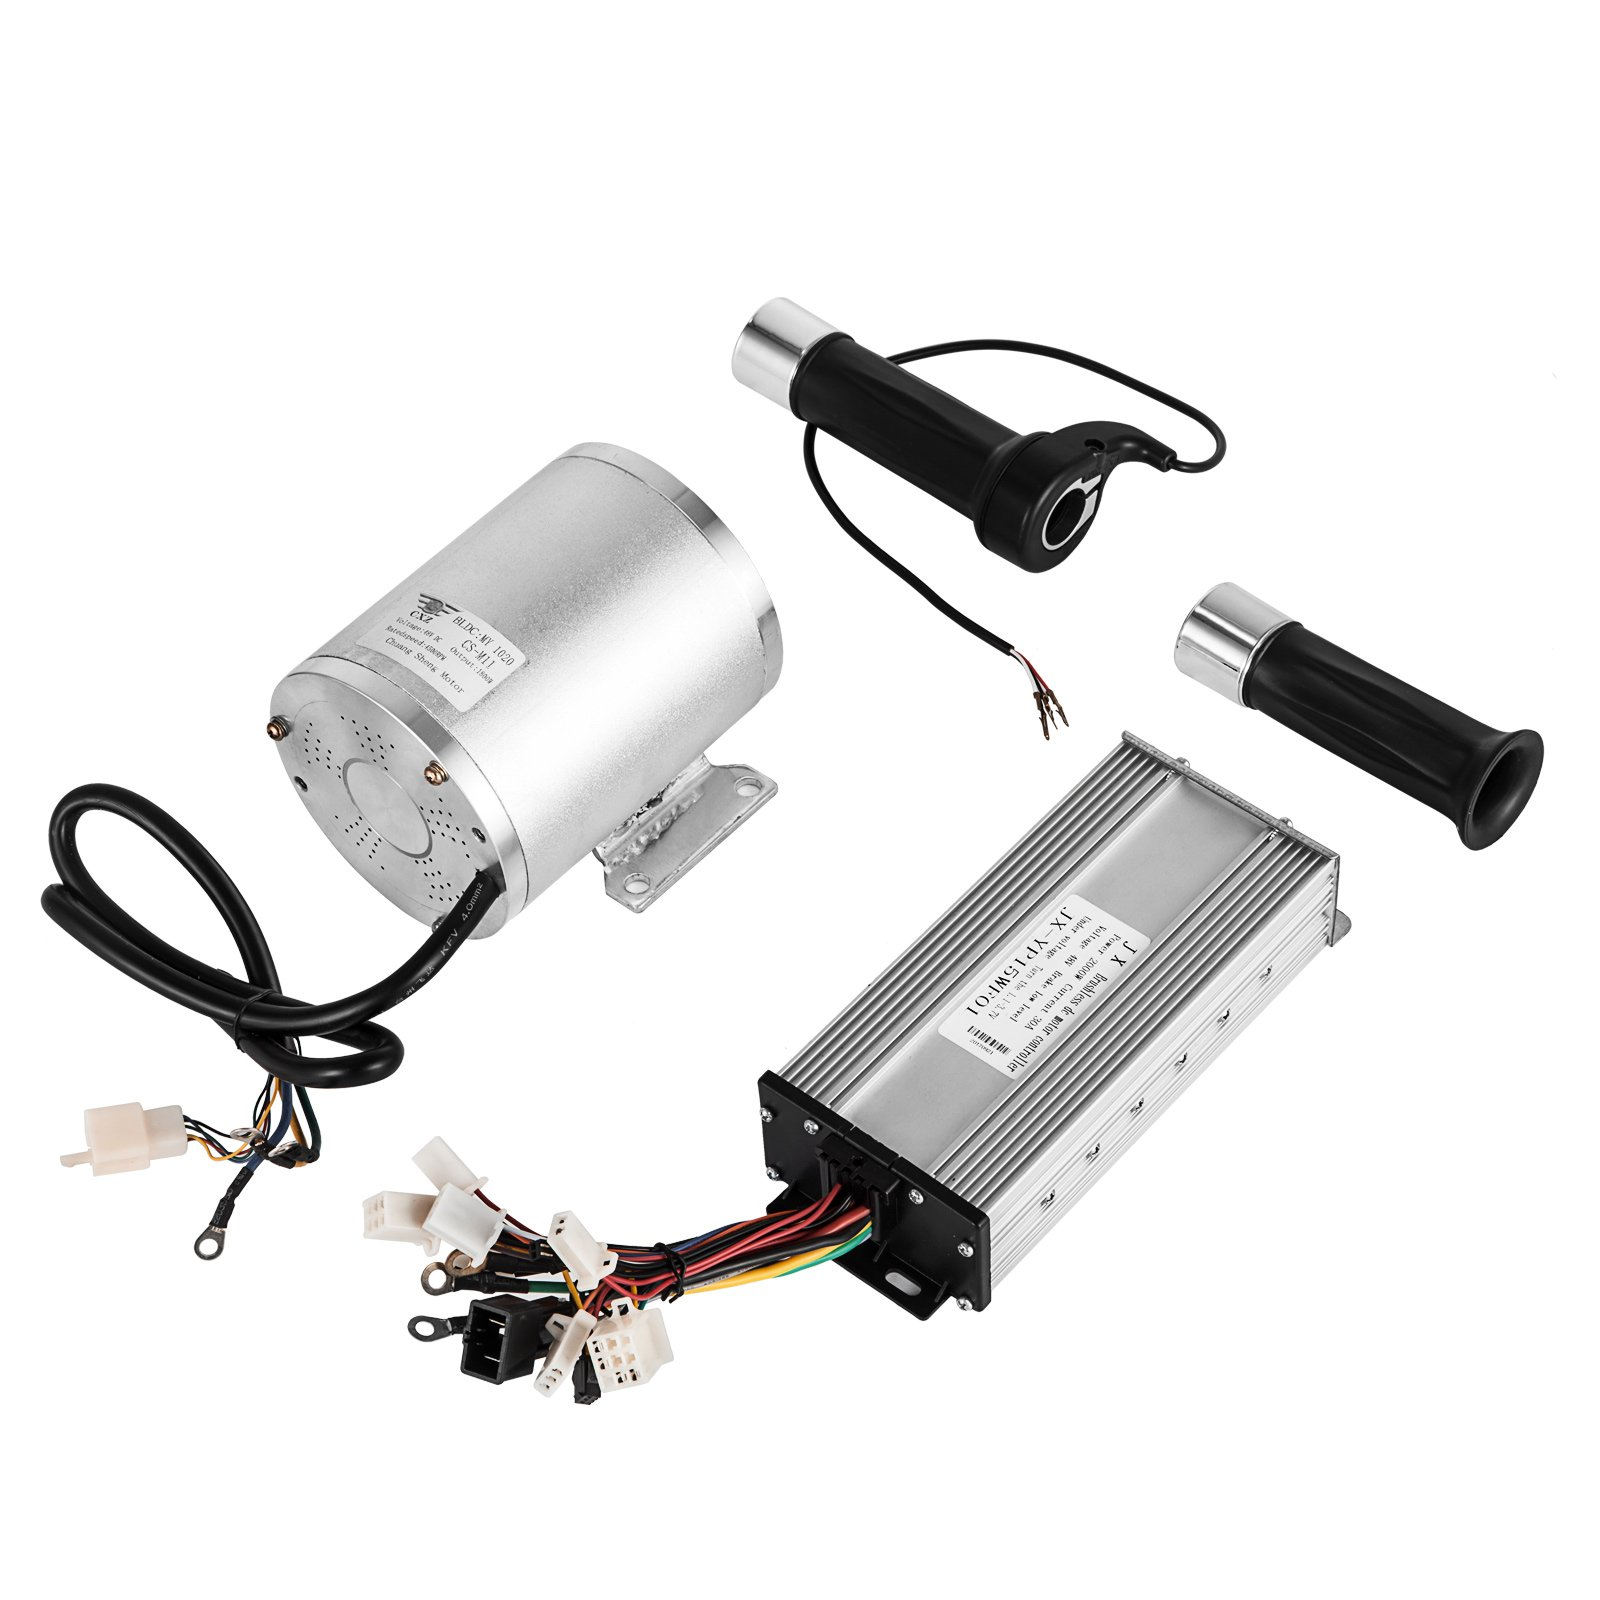 Mophorn 1800W Electric Brushless DC Motor Kit 48V High Speed Brushless Motor with 32A Speed Controller and Throttle Grip Kit for Go Karts E-bike Electric Throttle Motorcycle Scooter and More (1800W) by Mophorn